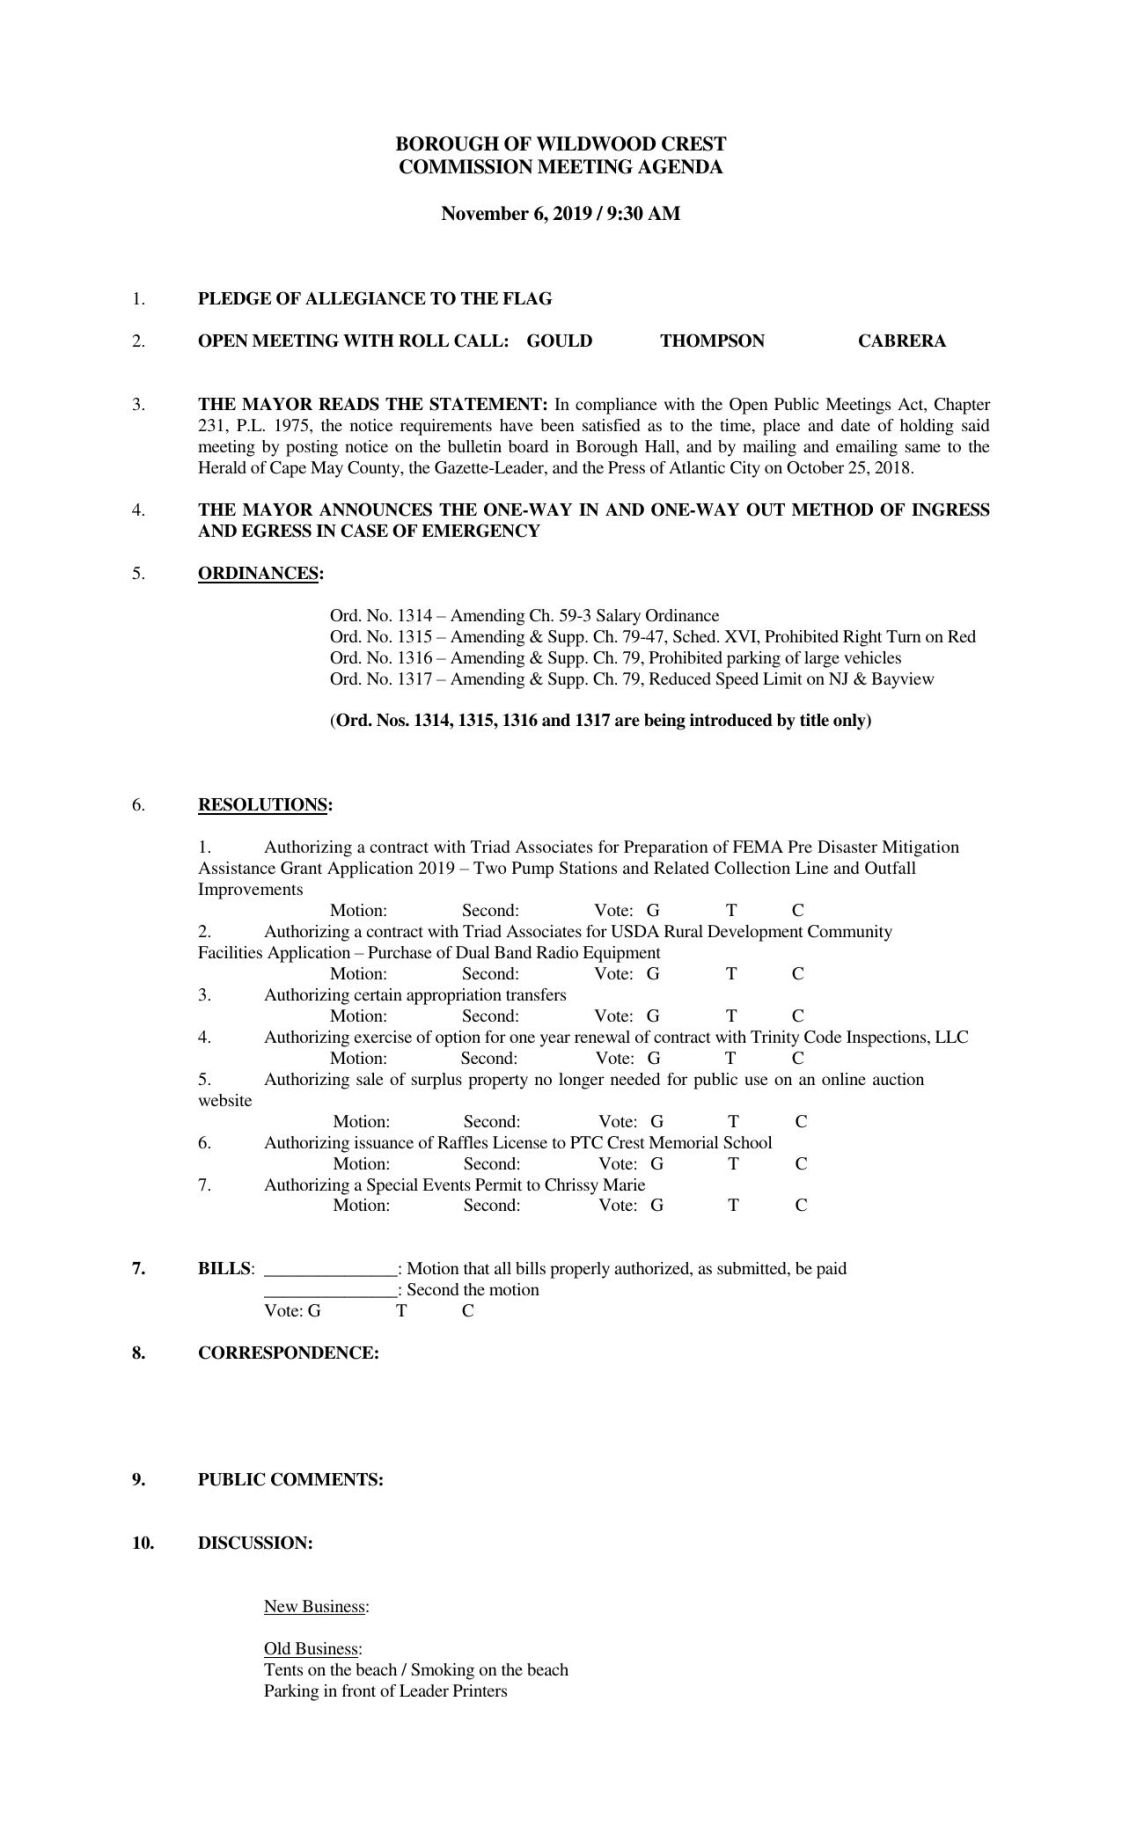 Wildwood Crest Borough Commissioners Agenda Nov. 6, 2019